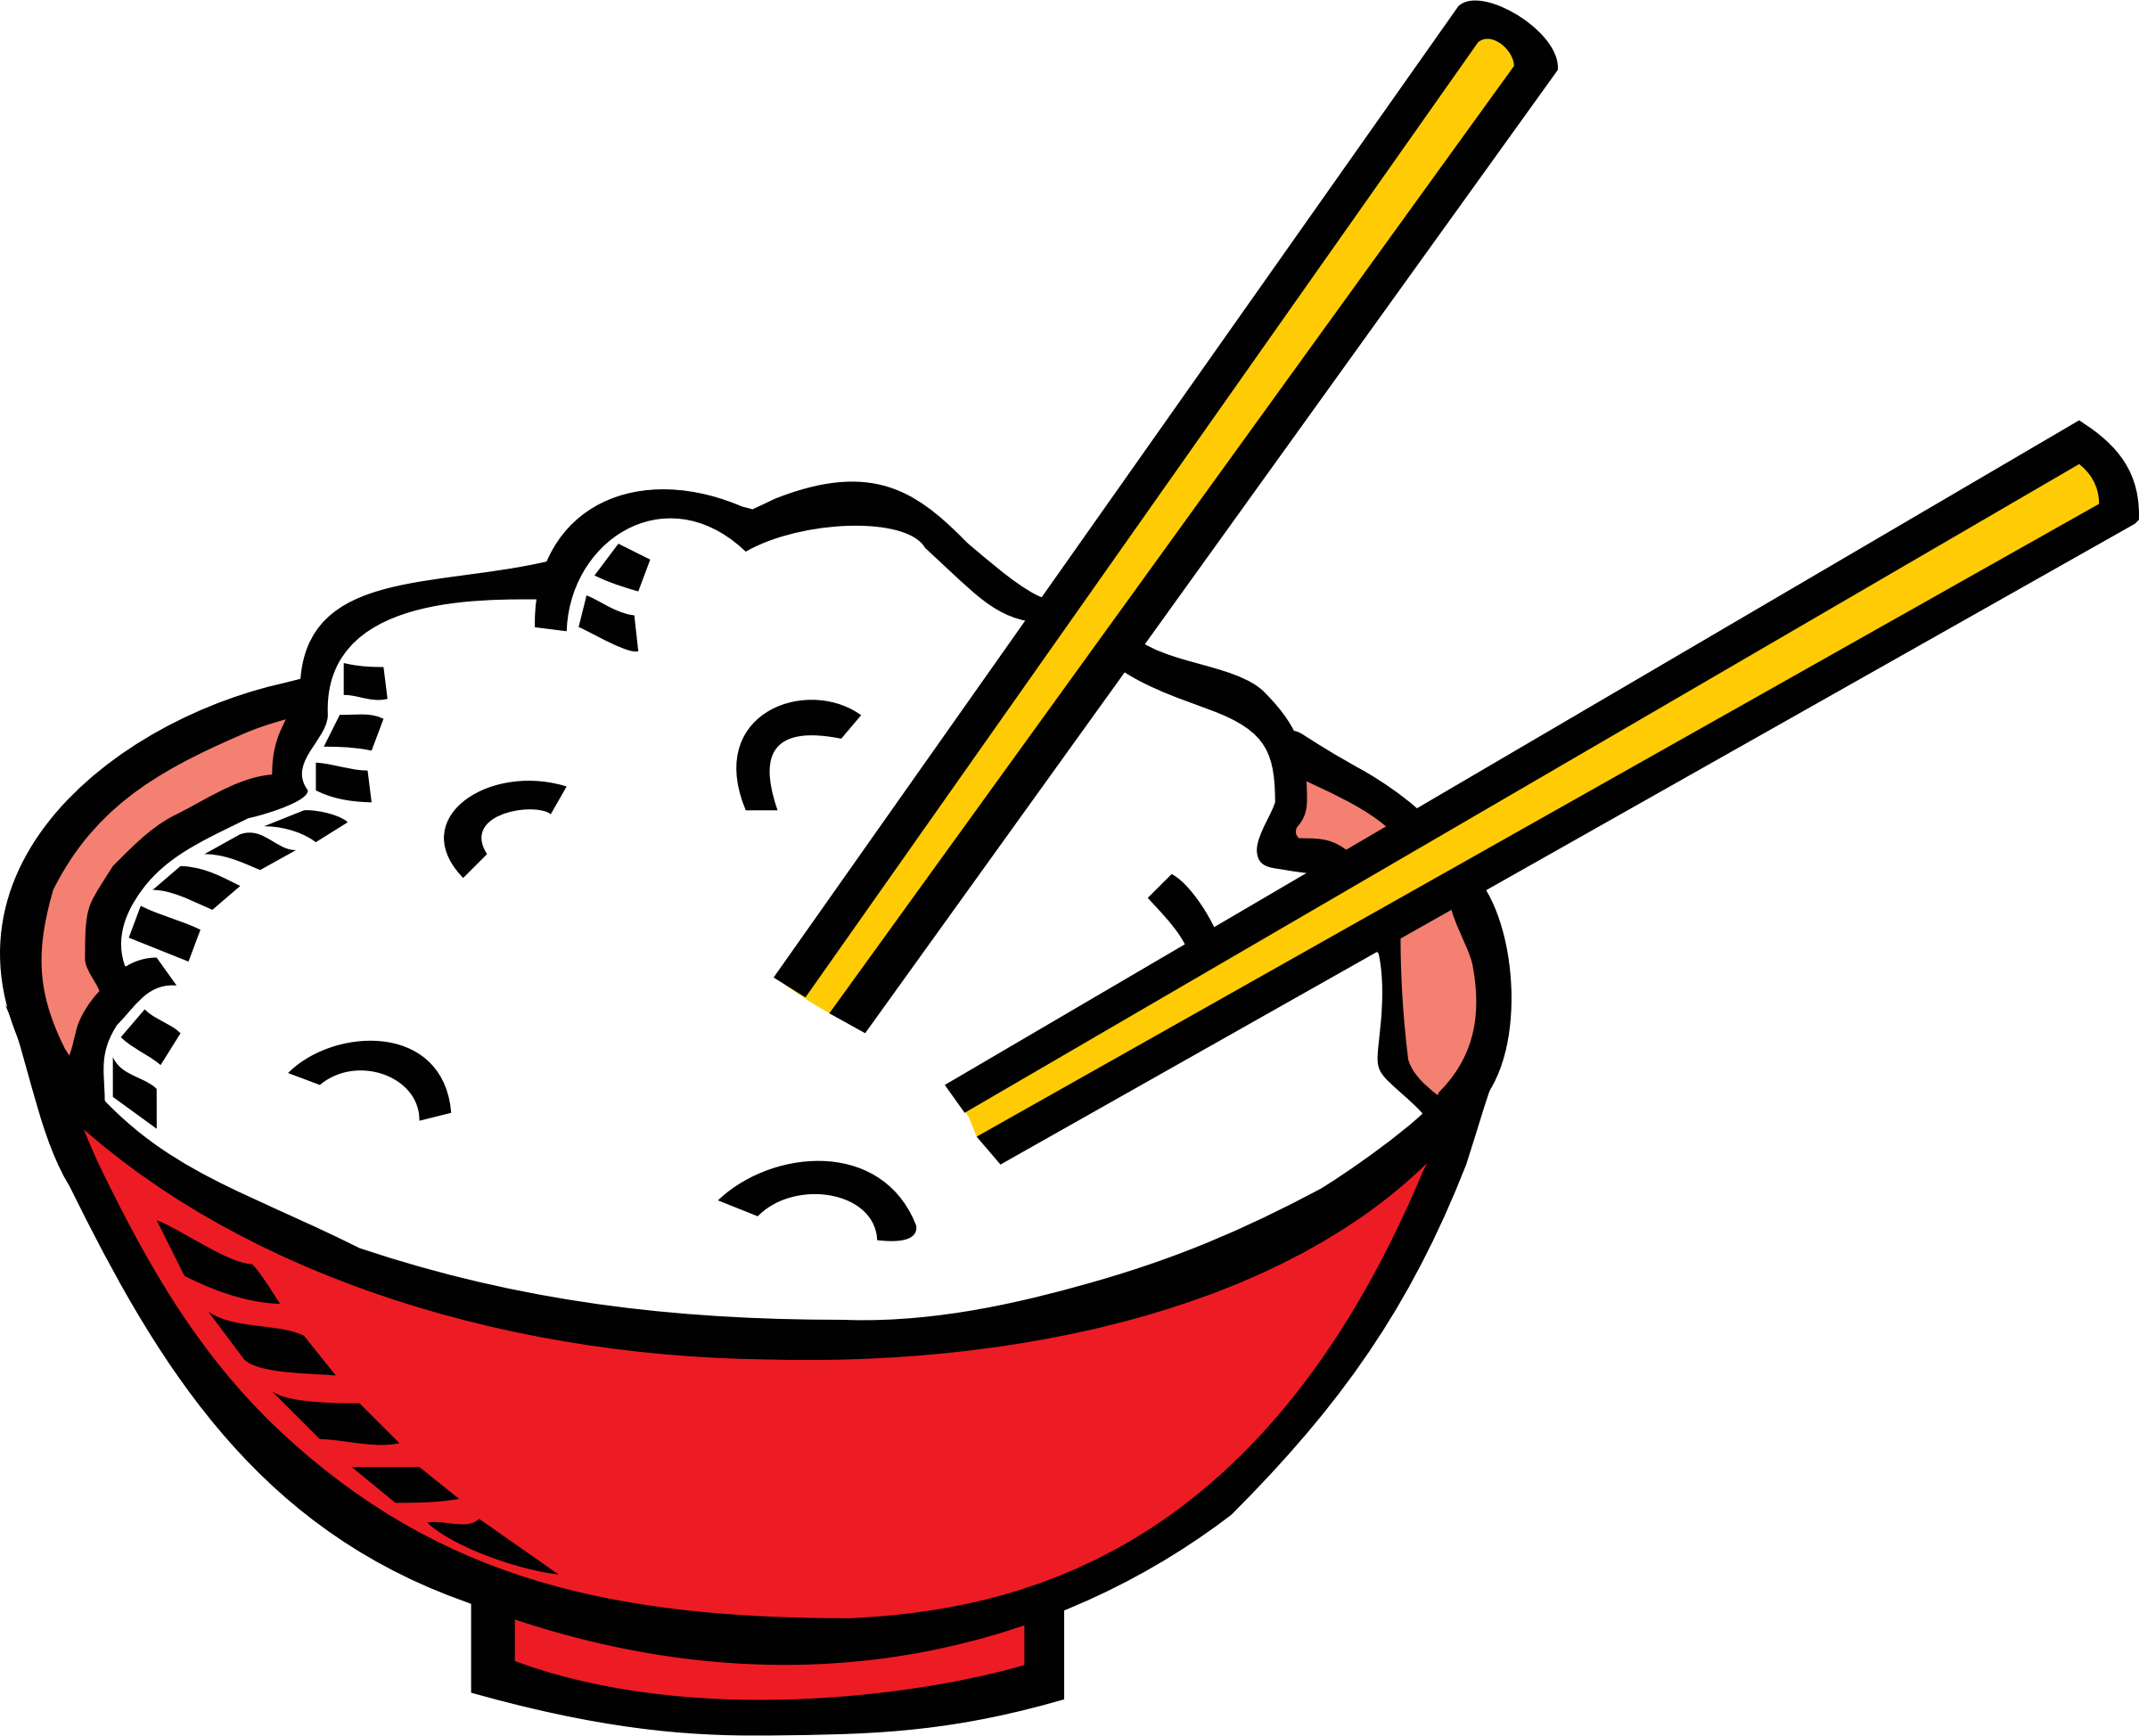 Chopsticks clipart plate rice. Free cliparts download clip